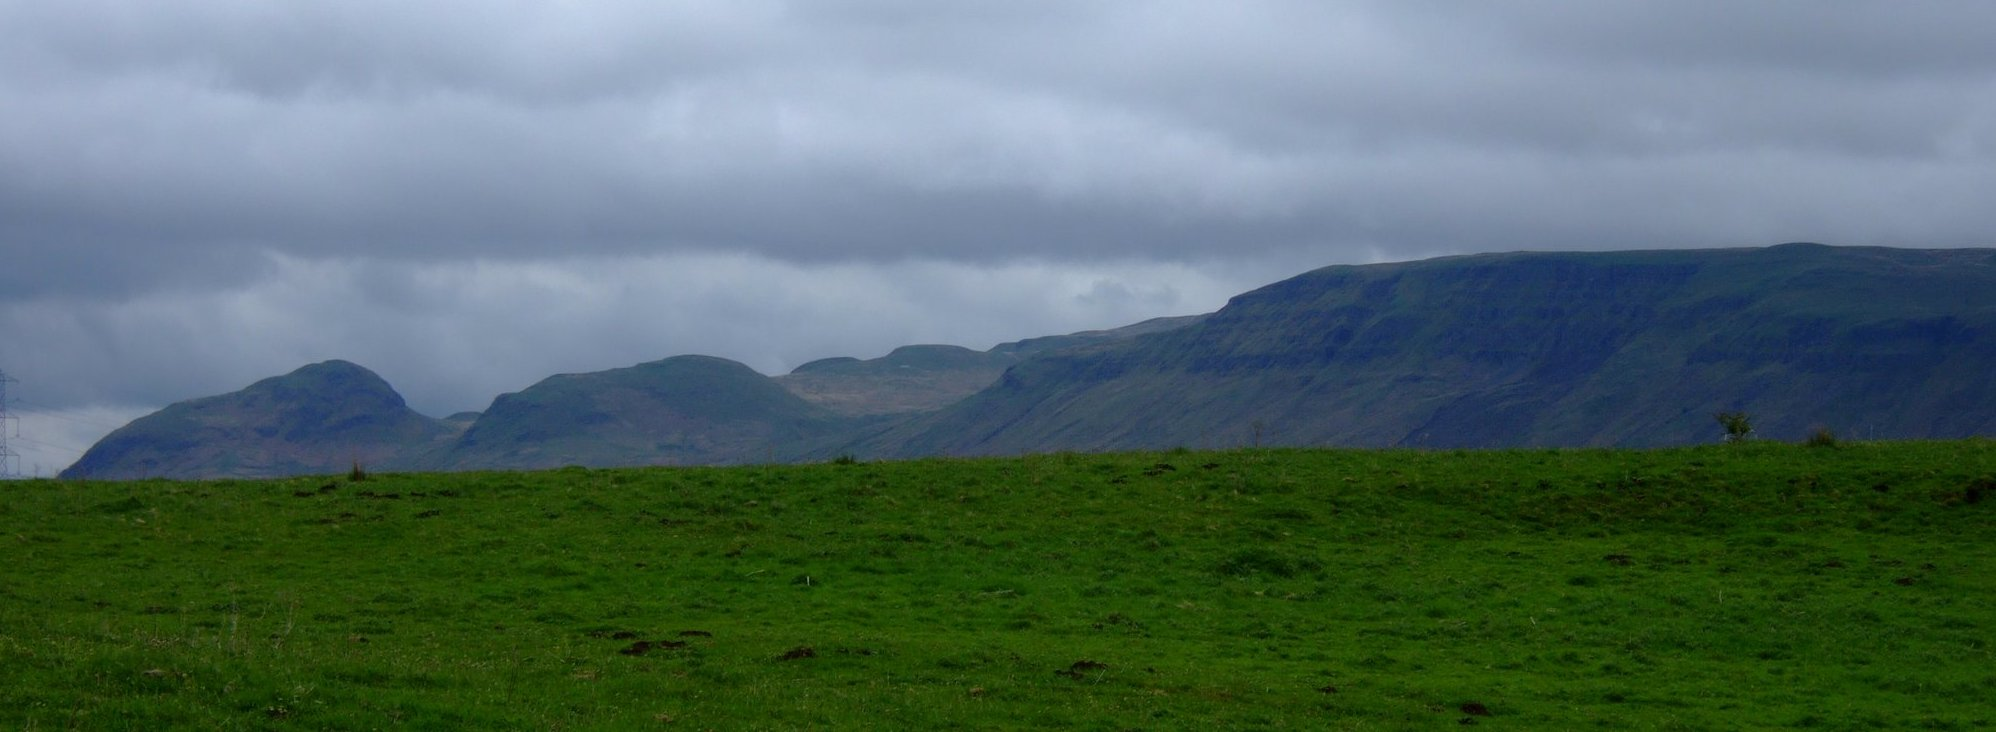 Dumgoyne and Dumfoyn and the long craggy face of Black Craig, seen from Mugdock Country Park